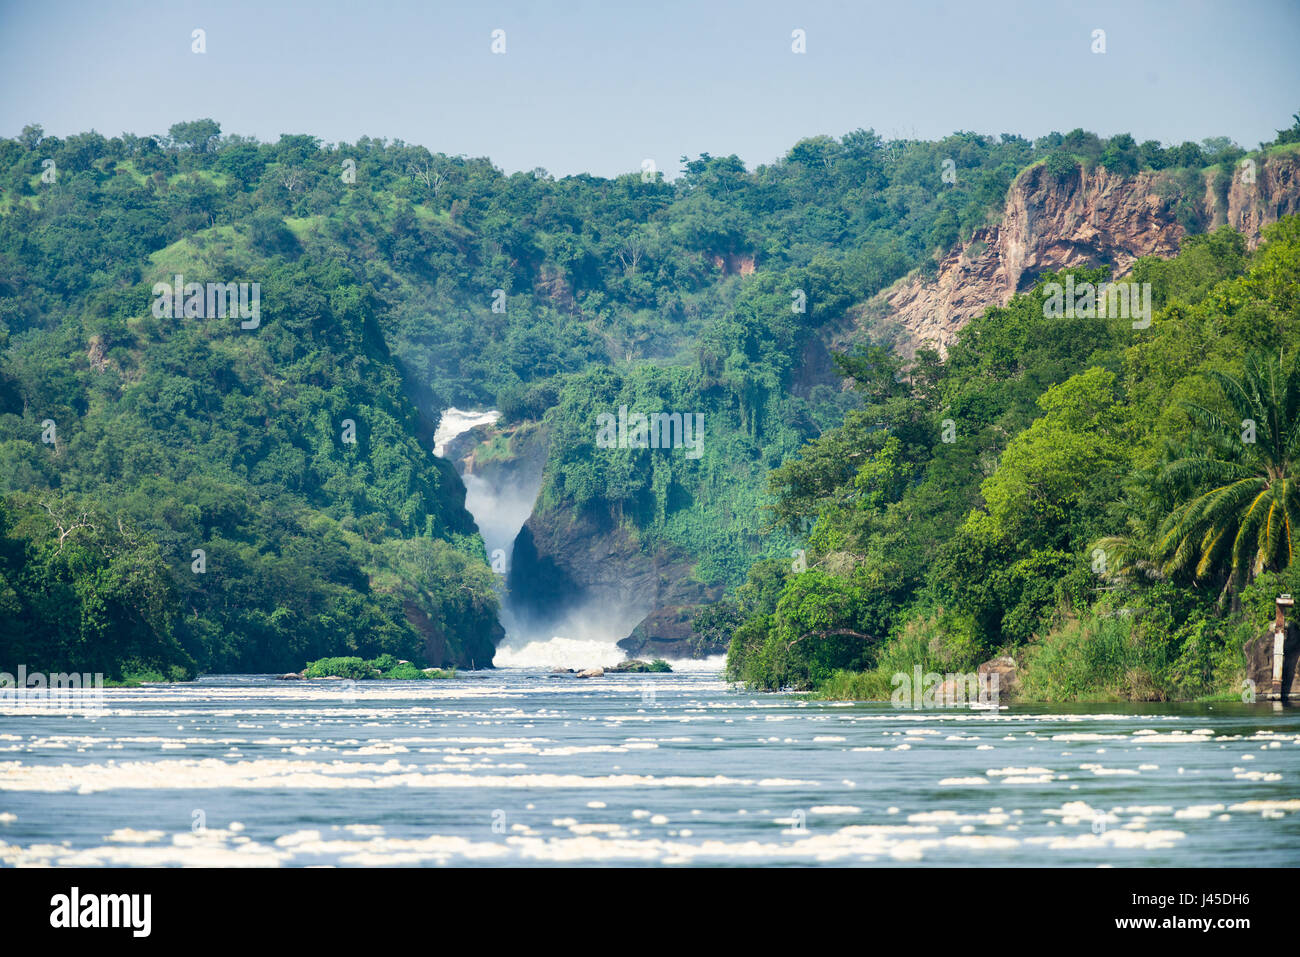 Murchison Falls and the Victoria Nile flowing over it, Uganda Stock Photo